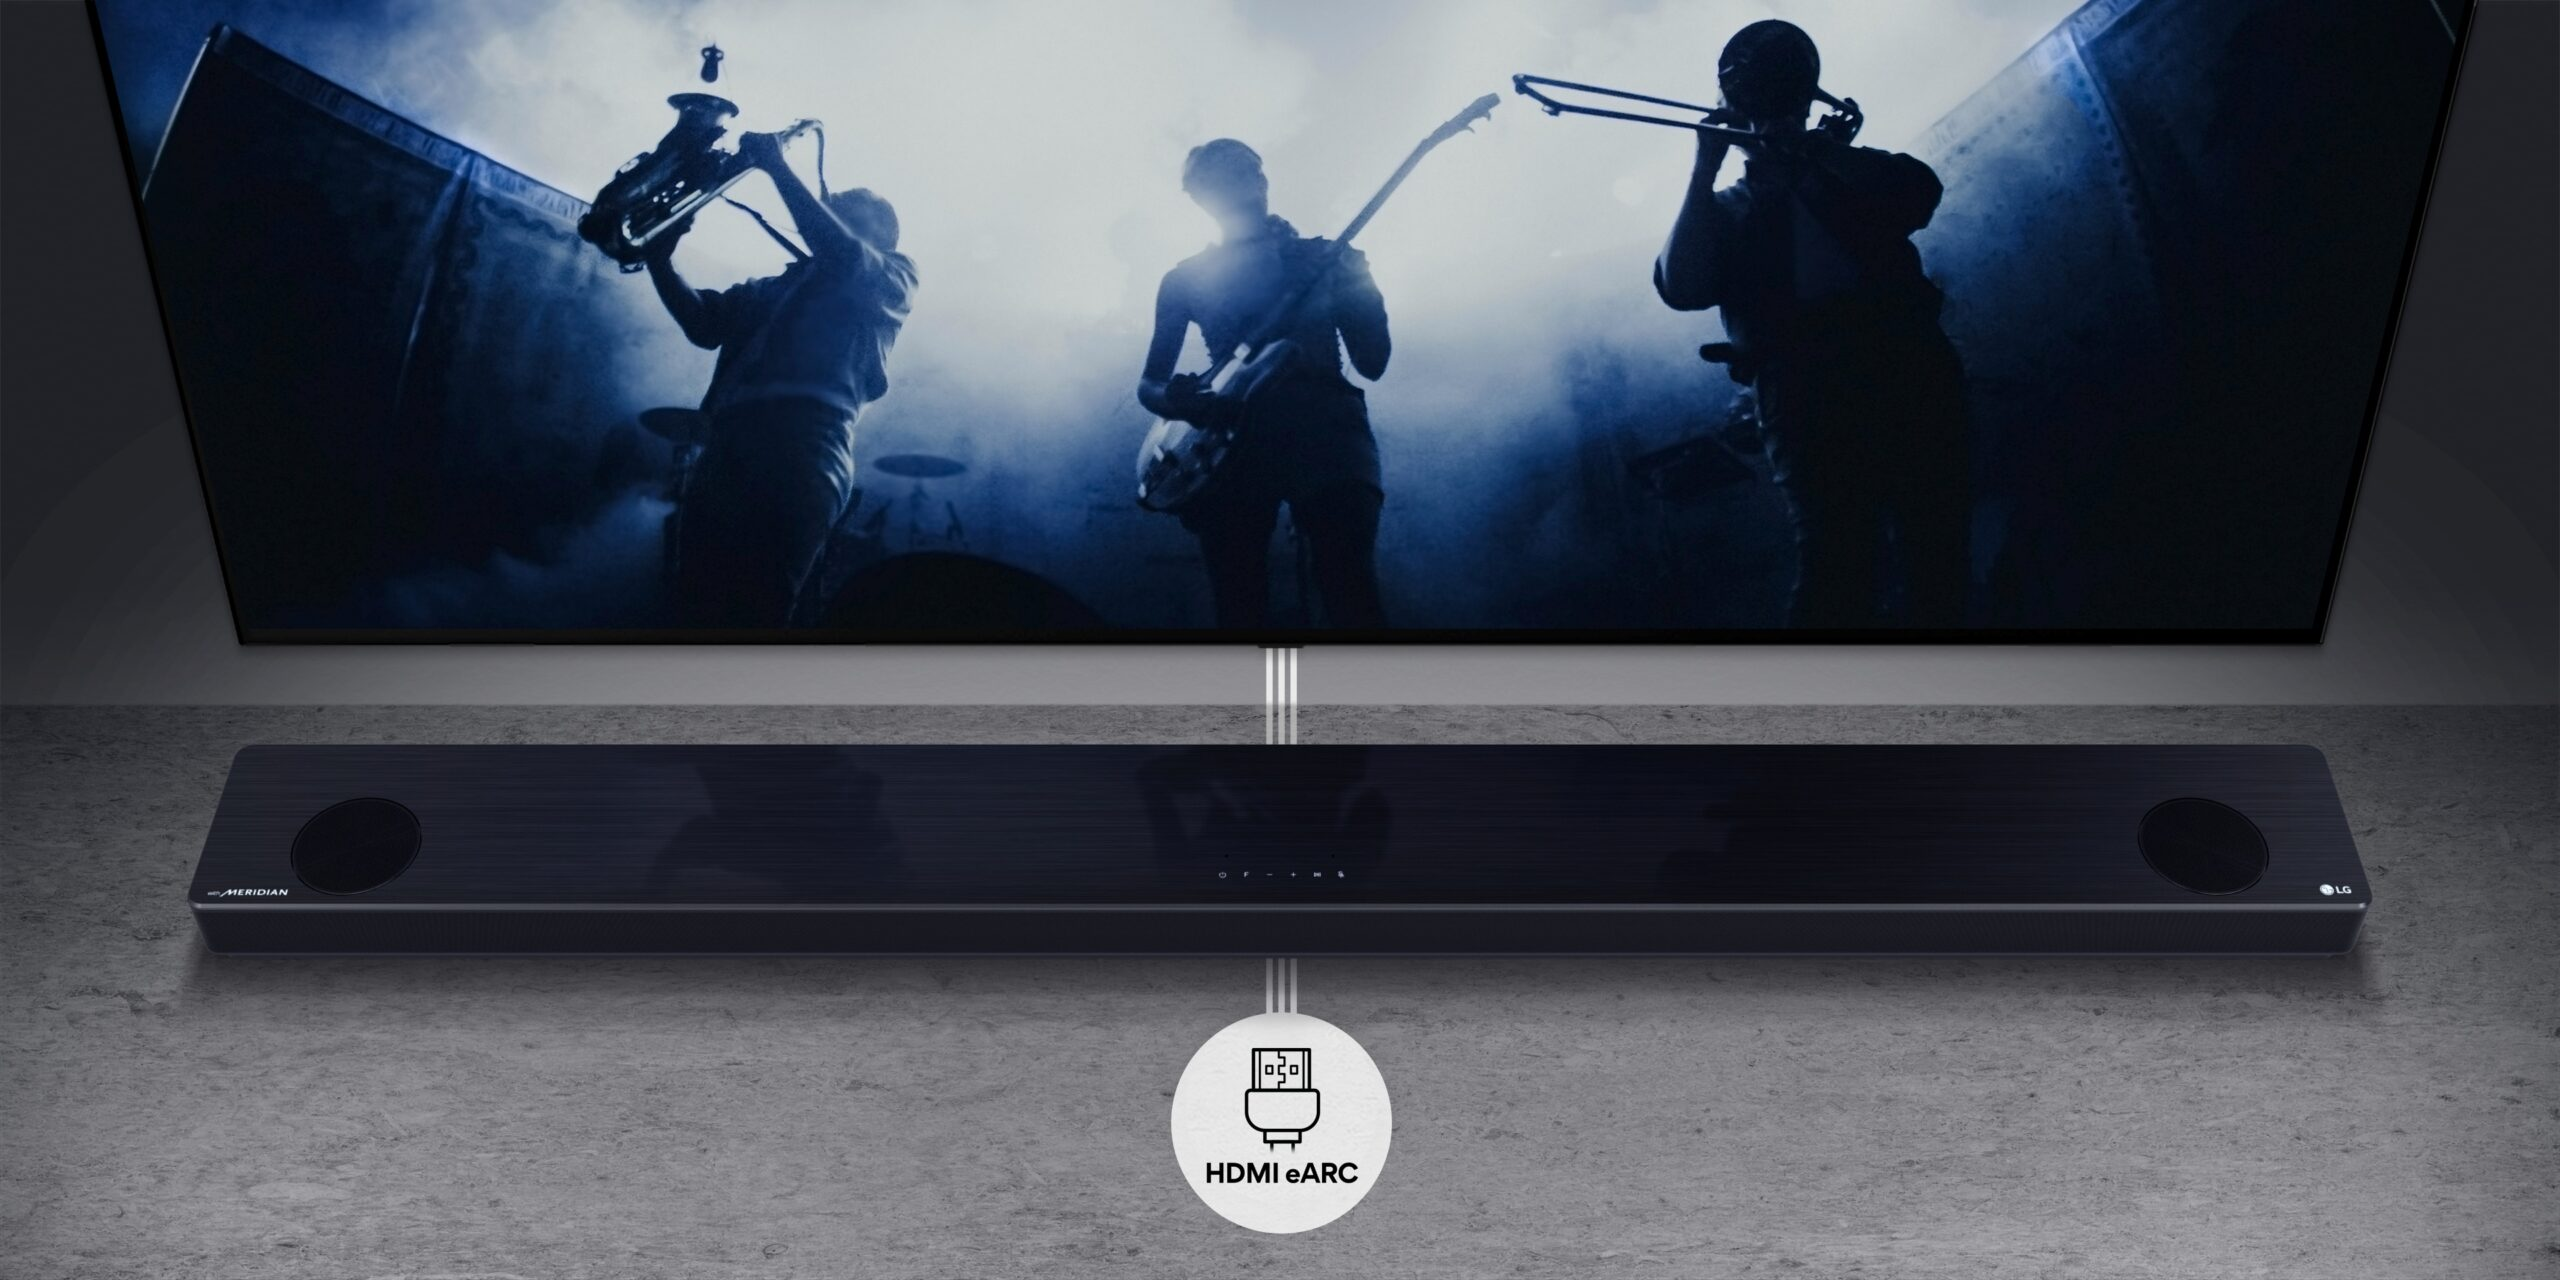 LG Soundbar with HDMI eARC support lying in front of an LG TV with a HDMI eARC symbol